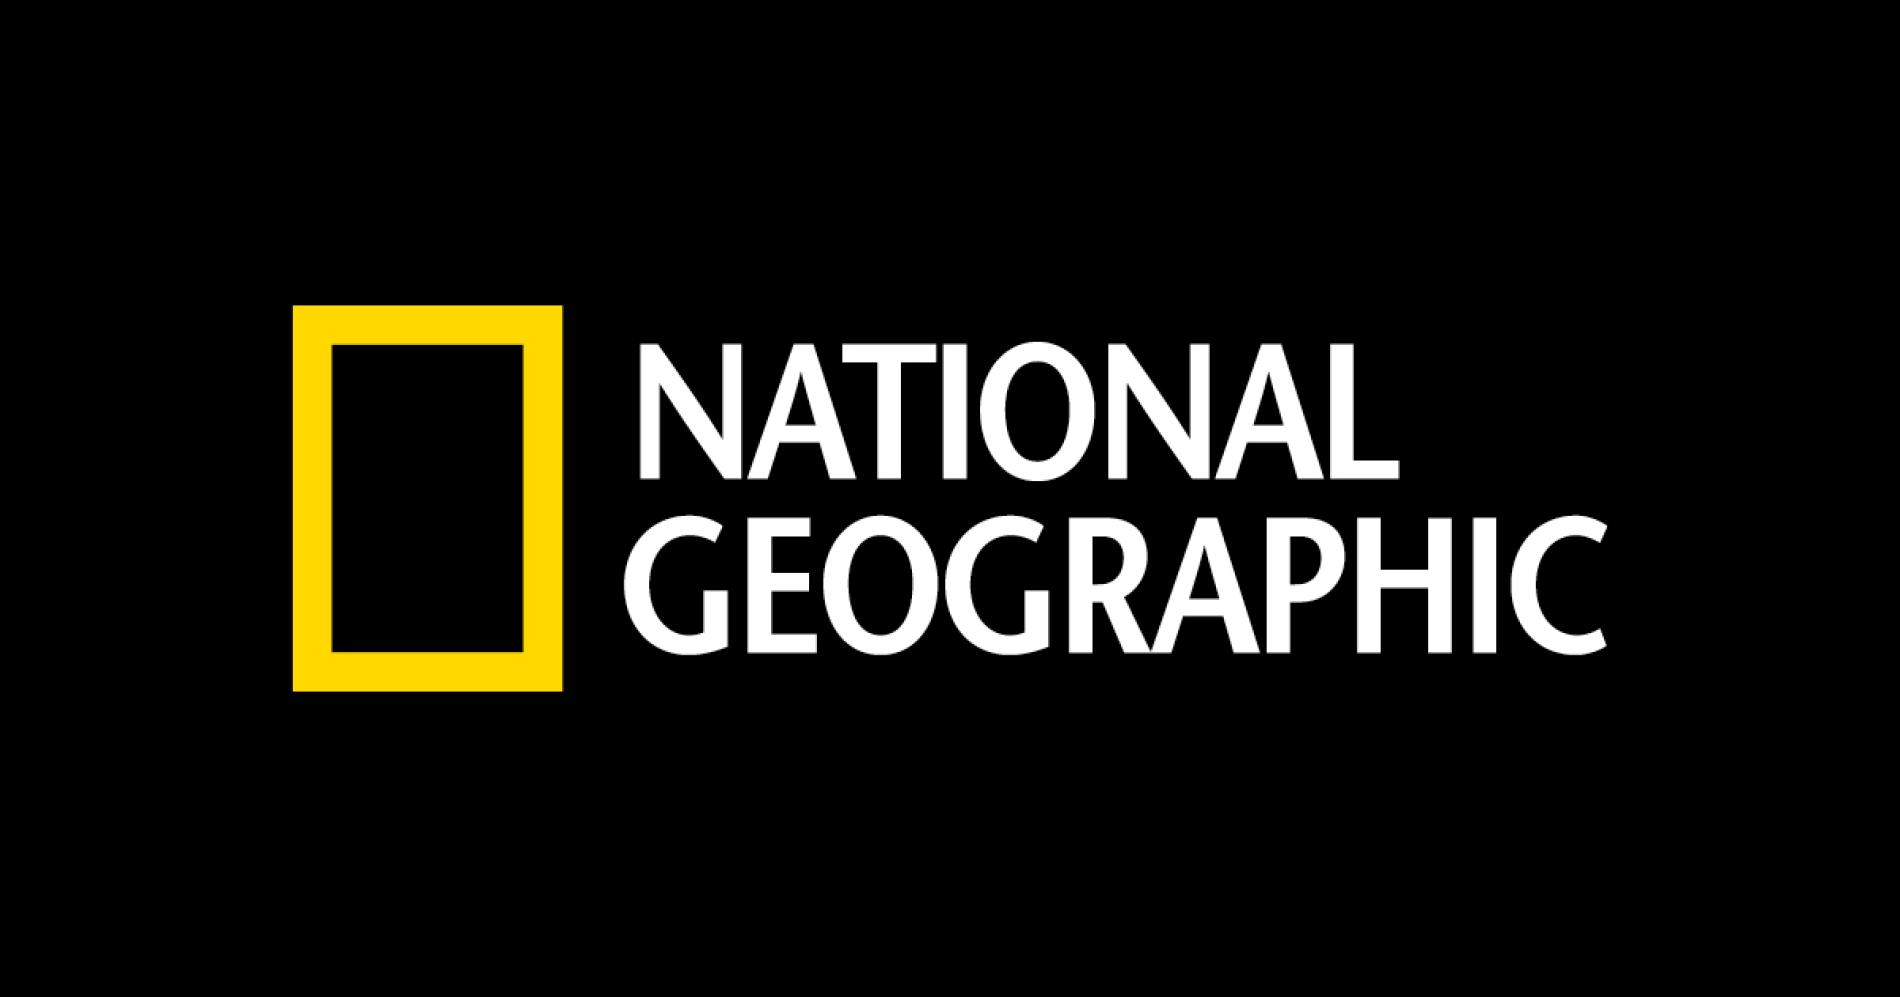 National Geographic Logo PNG-PlusPNG.com-1900 - National Geographic Logo PNG